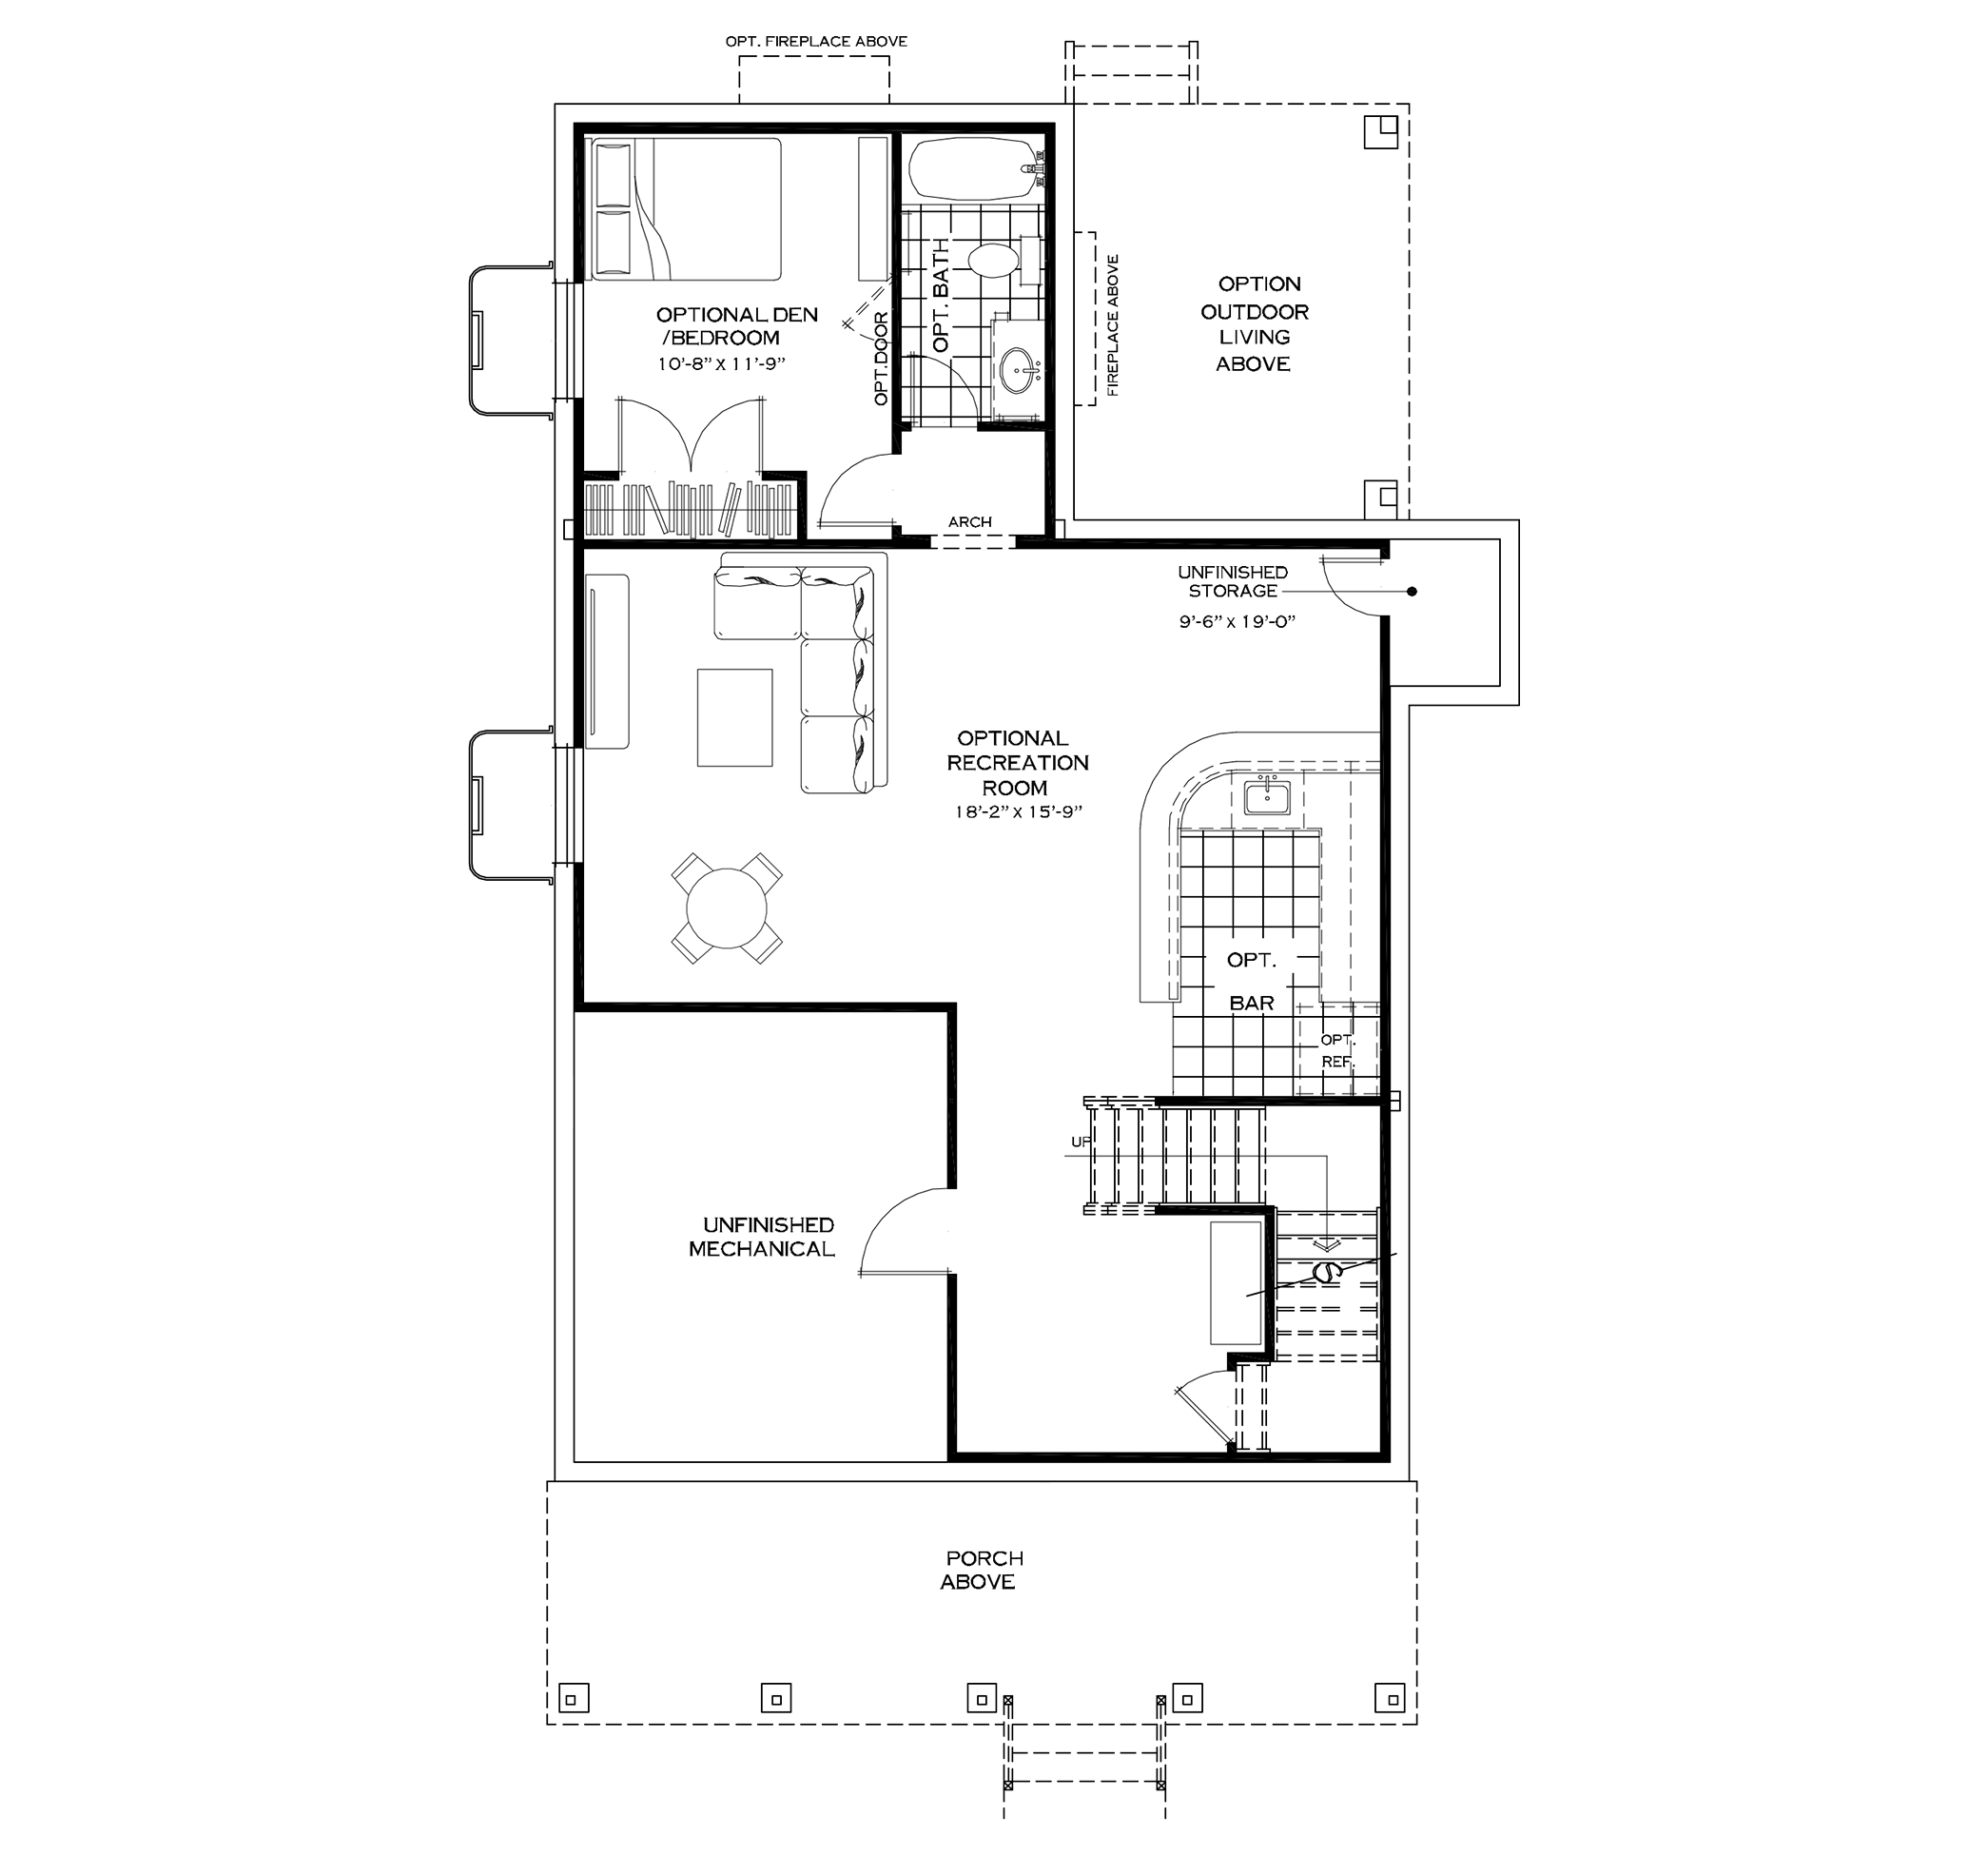 Optional Finished Basement with Mudroom and Extended Garage on First Floor